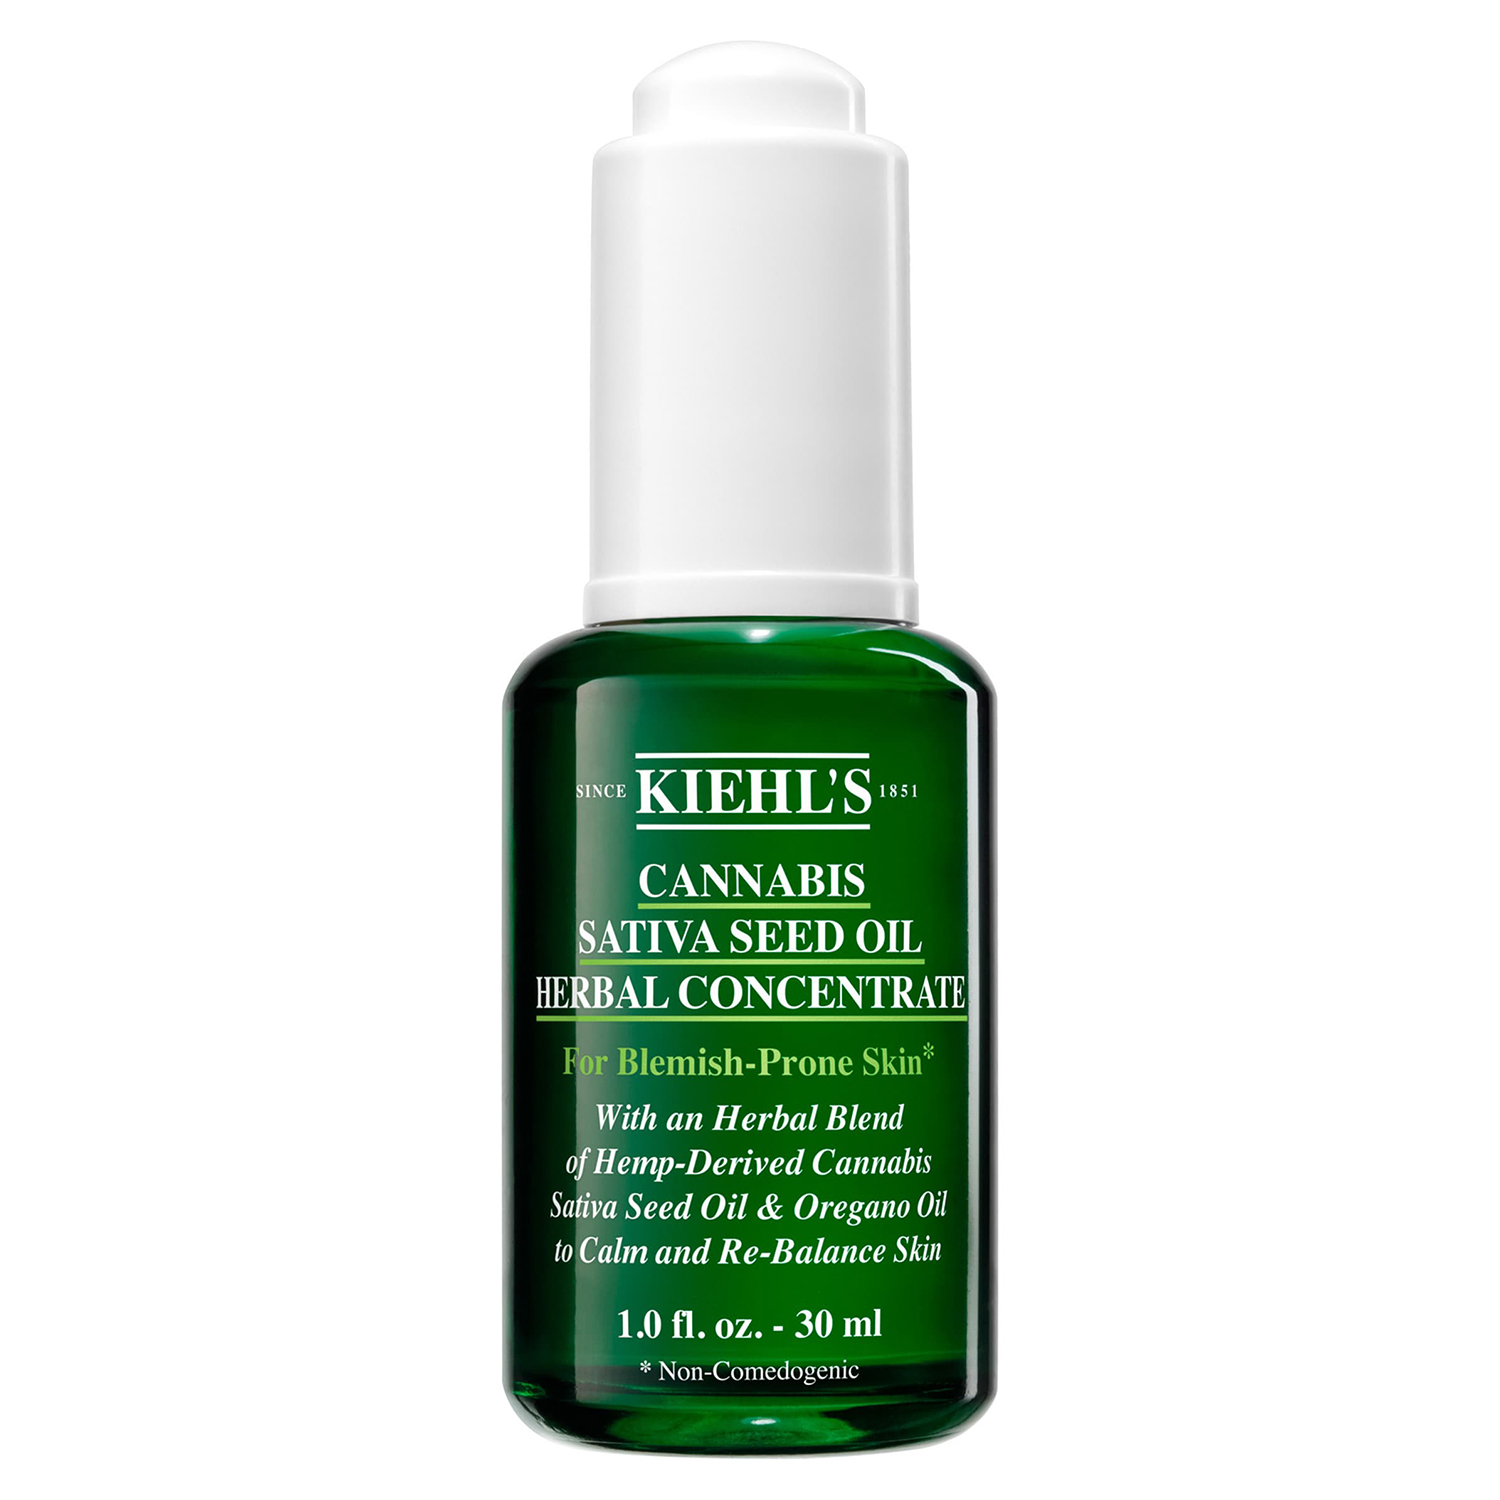 Cannabis Sativa Seed Oil Herbal Concentrate Hemp-Derived KIEHL'S SINCE 1851